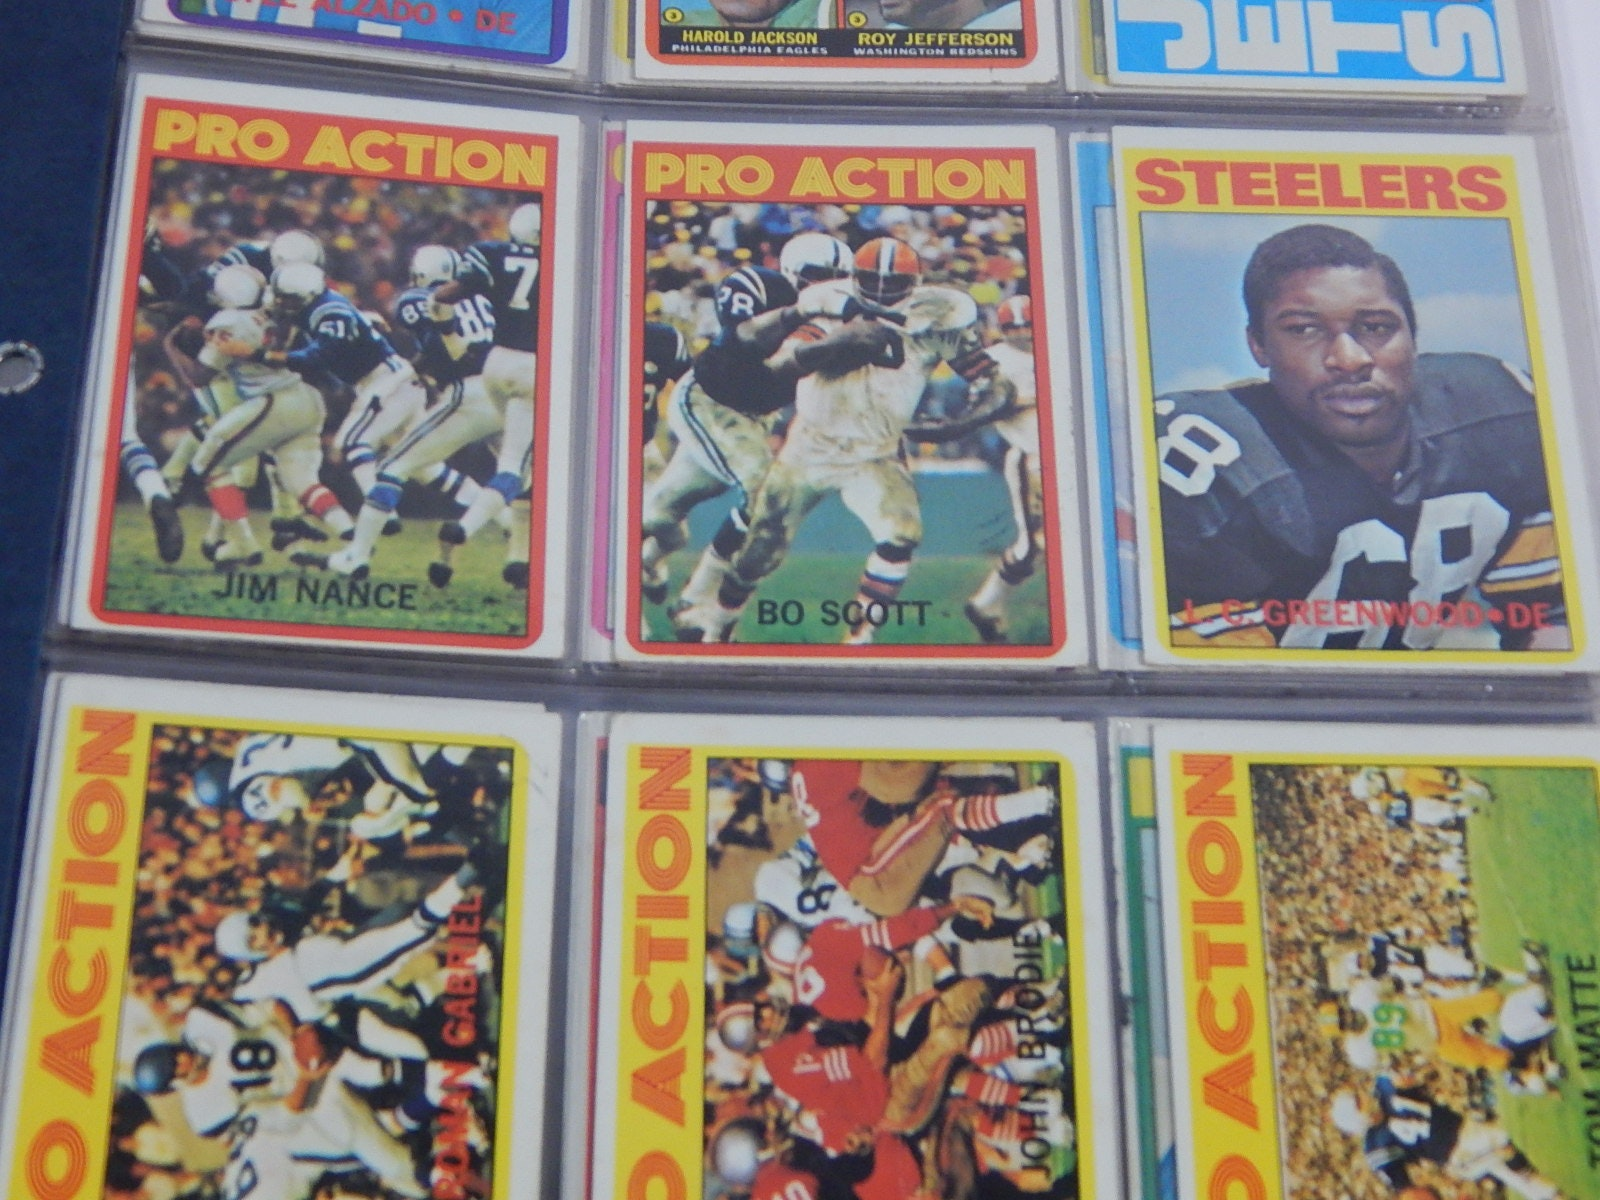 1972 Topps Football Card Collection in Binder - 45 Card Count